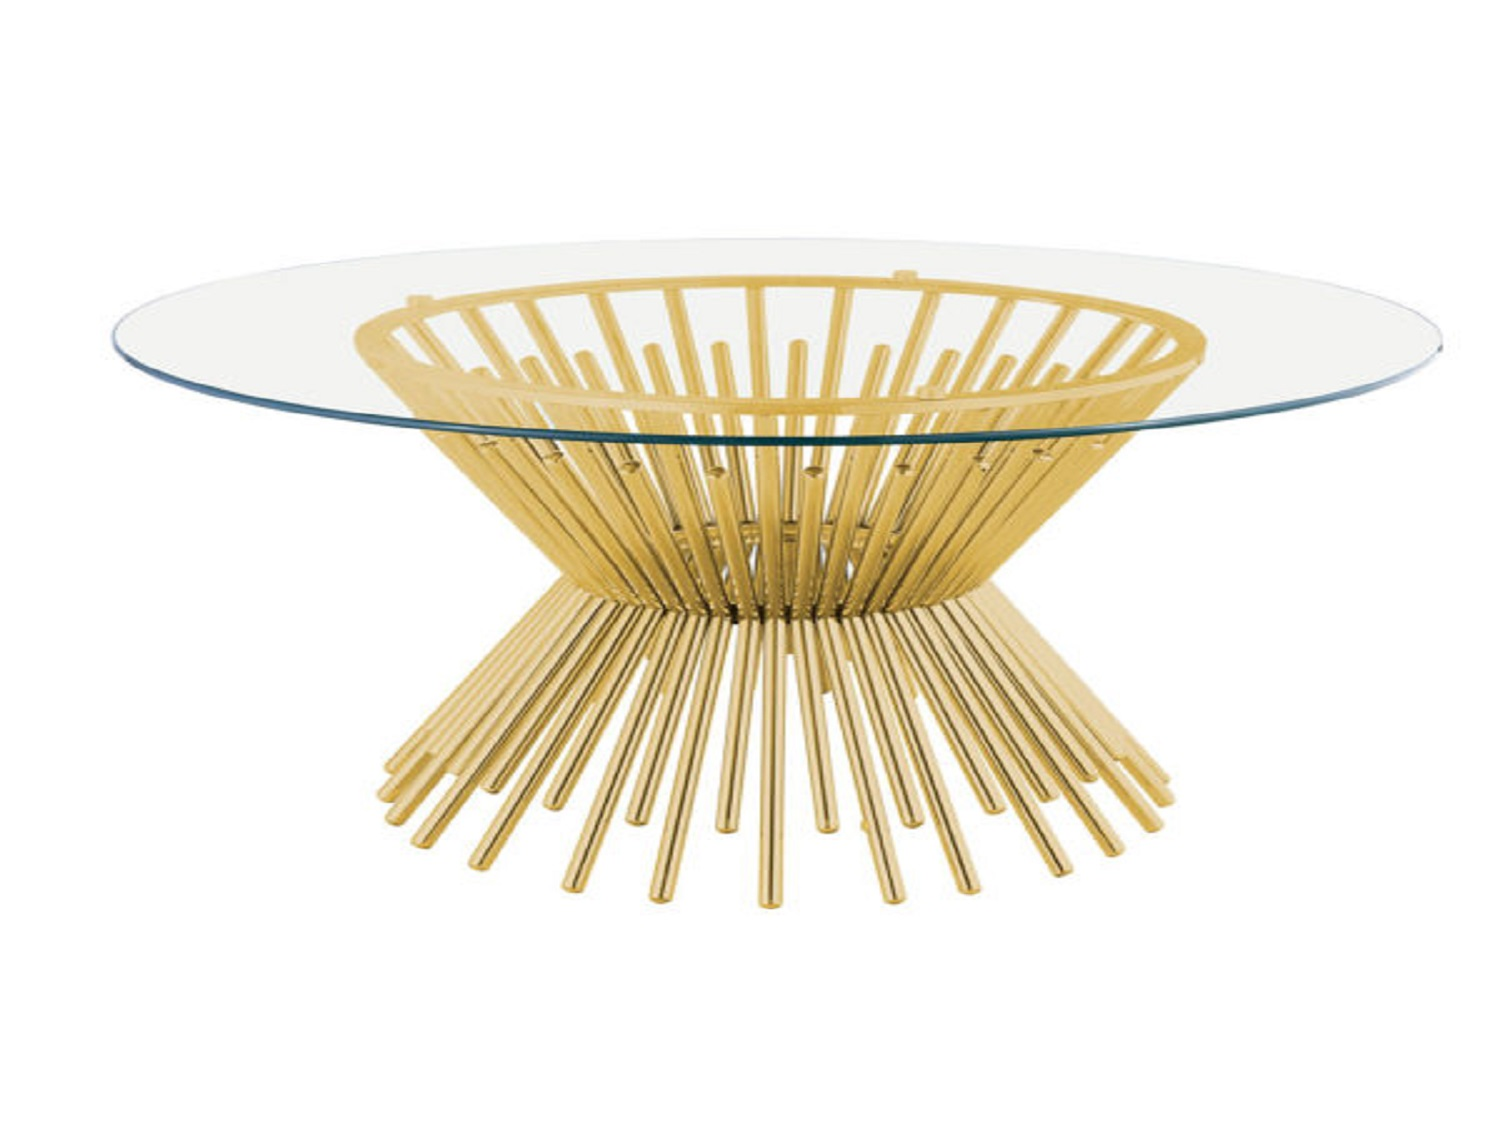 Monti Gold Coffee Table, 101287, Coffee Table by Midha Furniture to Brampton, Mississauga, Etobicoke, Toronto, Scraborough, Caledon, Oakville, Markham, Ajax, Pickering, Oshawa, Richmondhill, Kitchener, Hamilton and GTA area